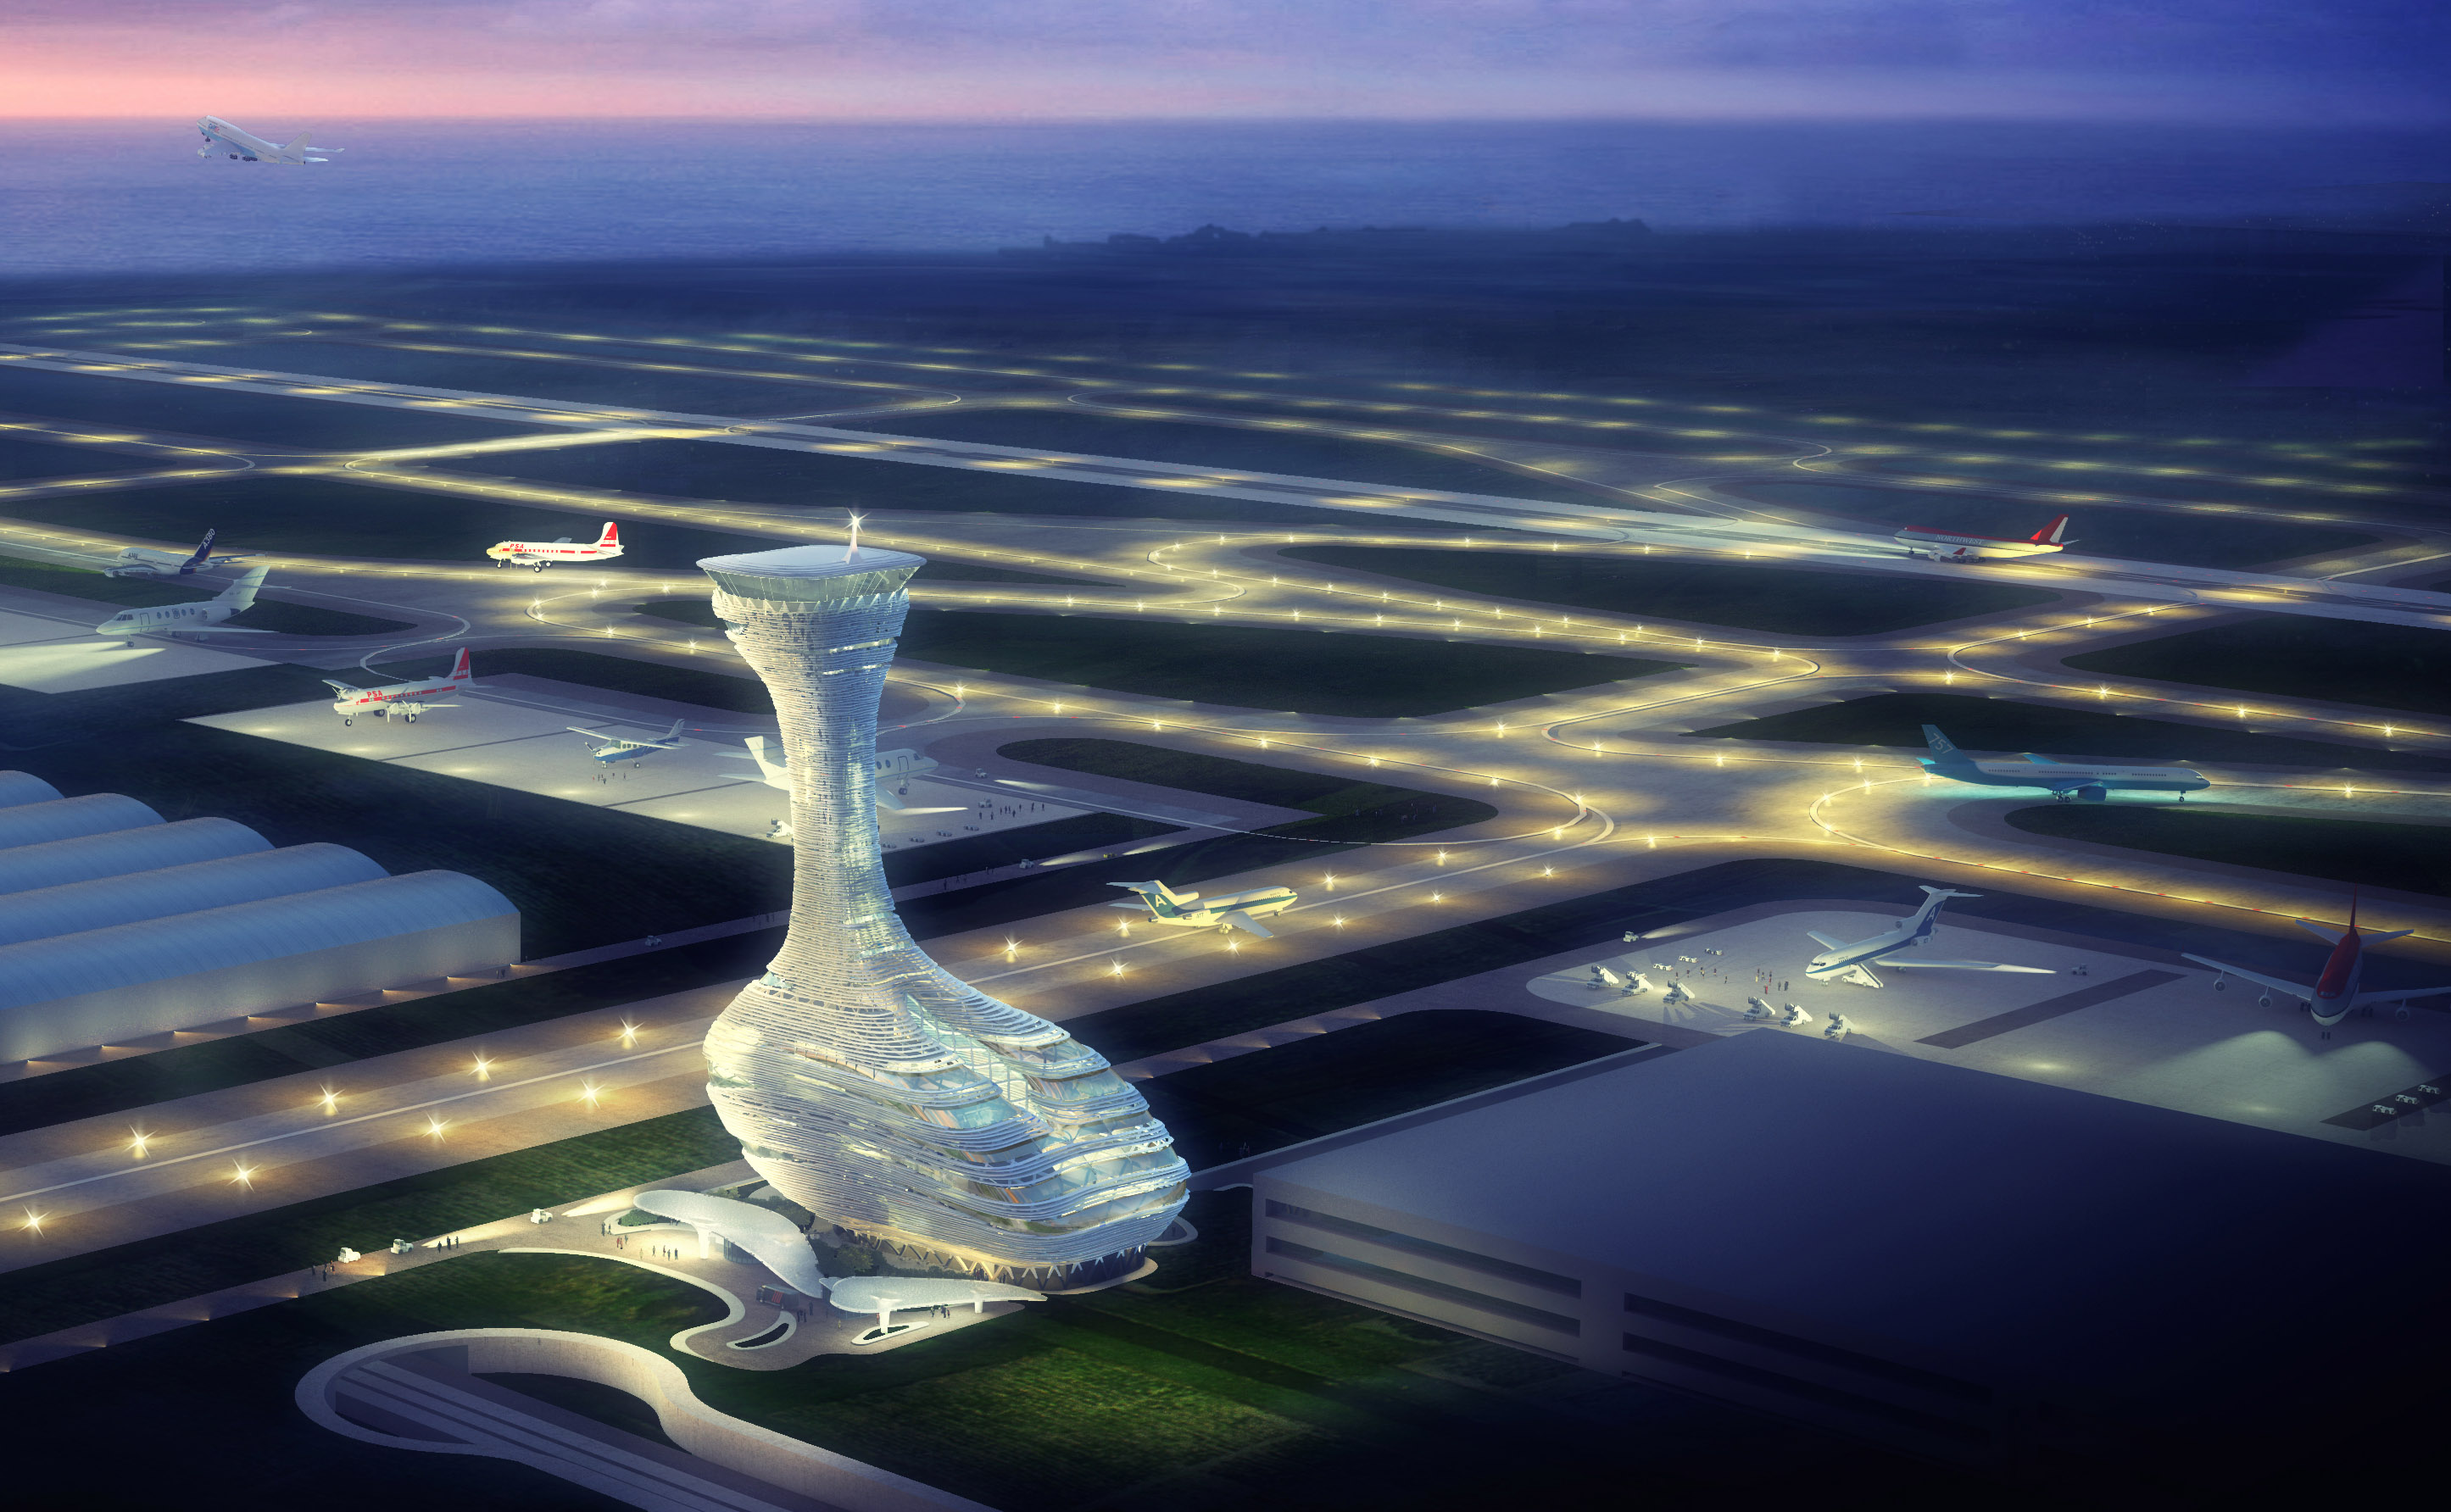 rmjm design shortlisted for istanbul air traffic control